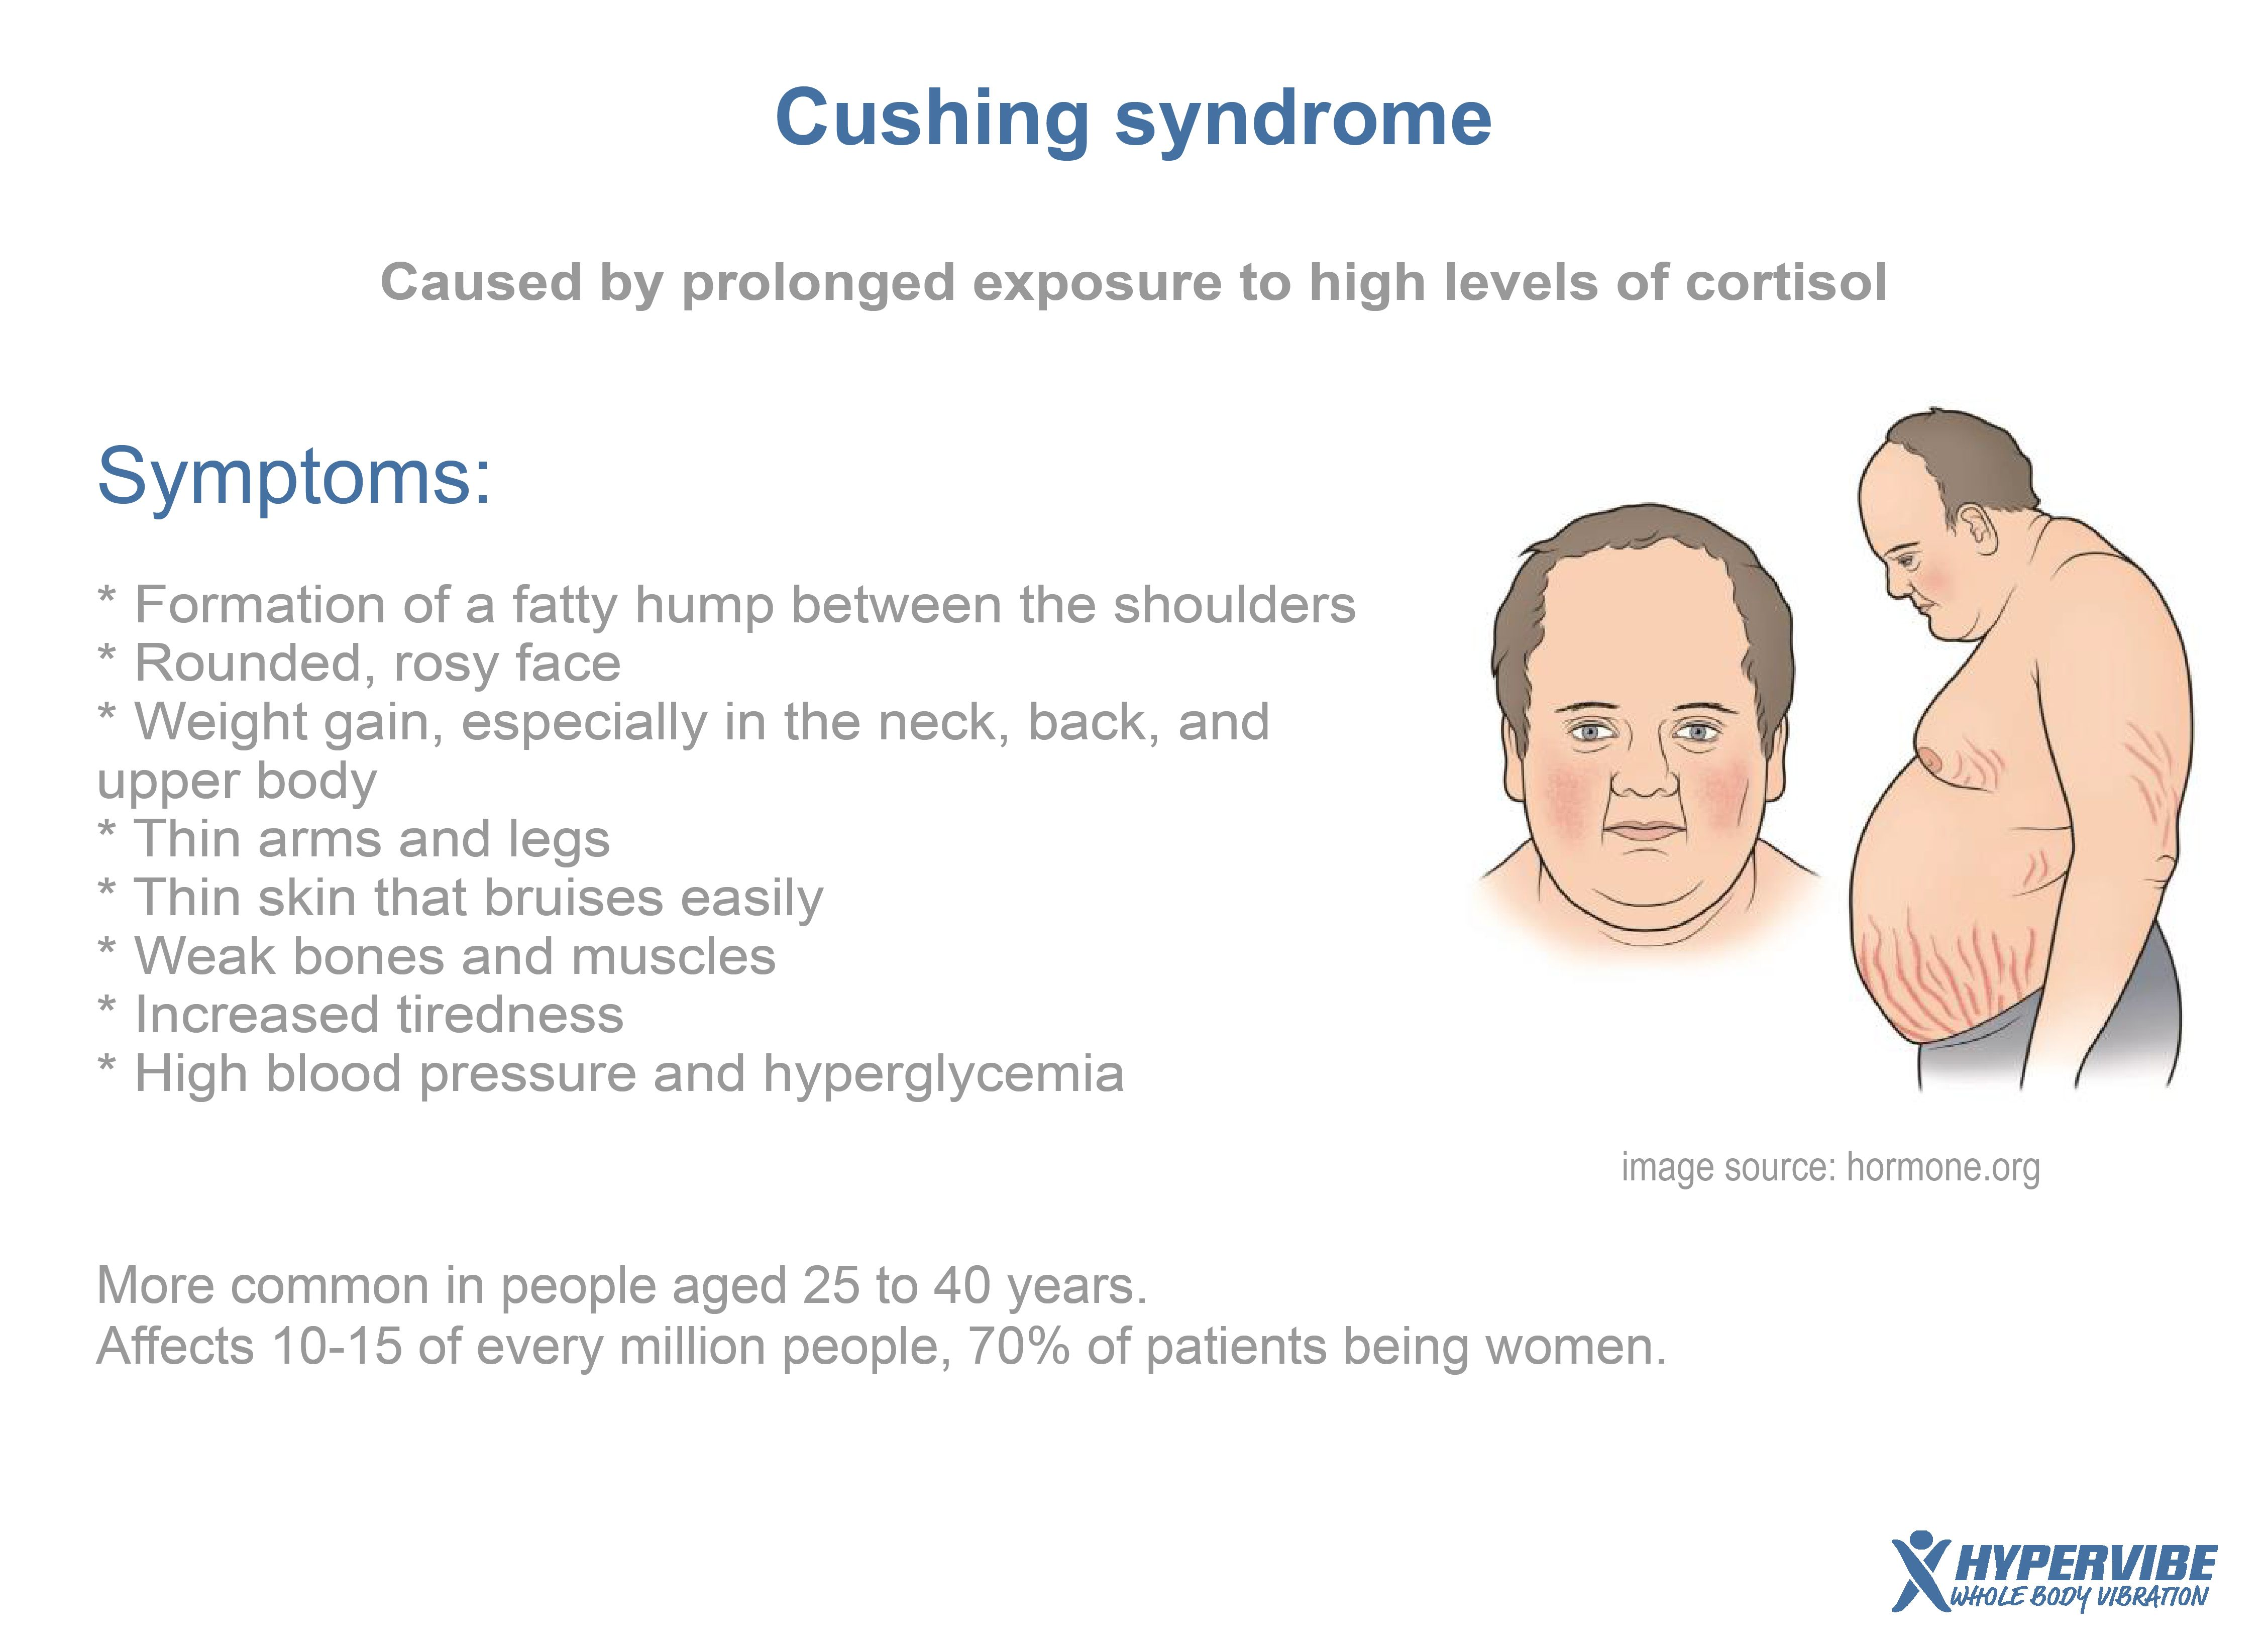 Cushing syndrome #health #cortisol